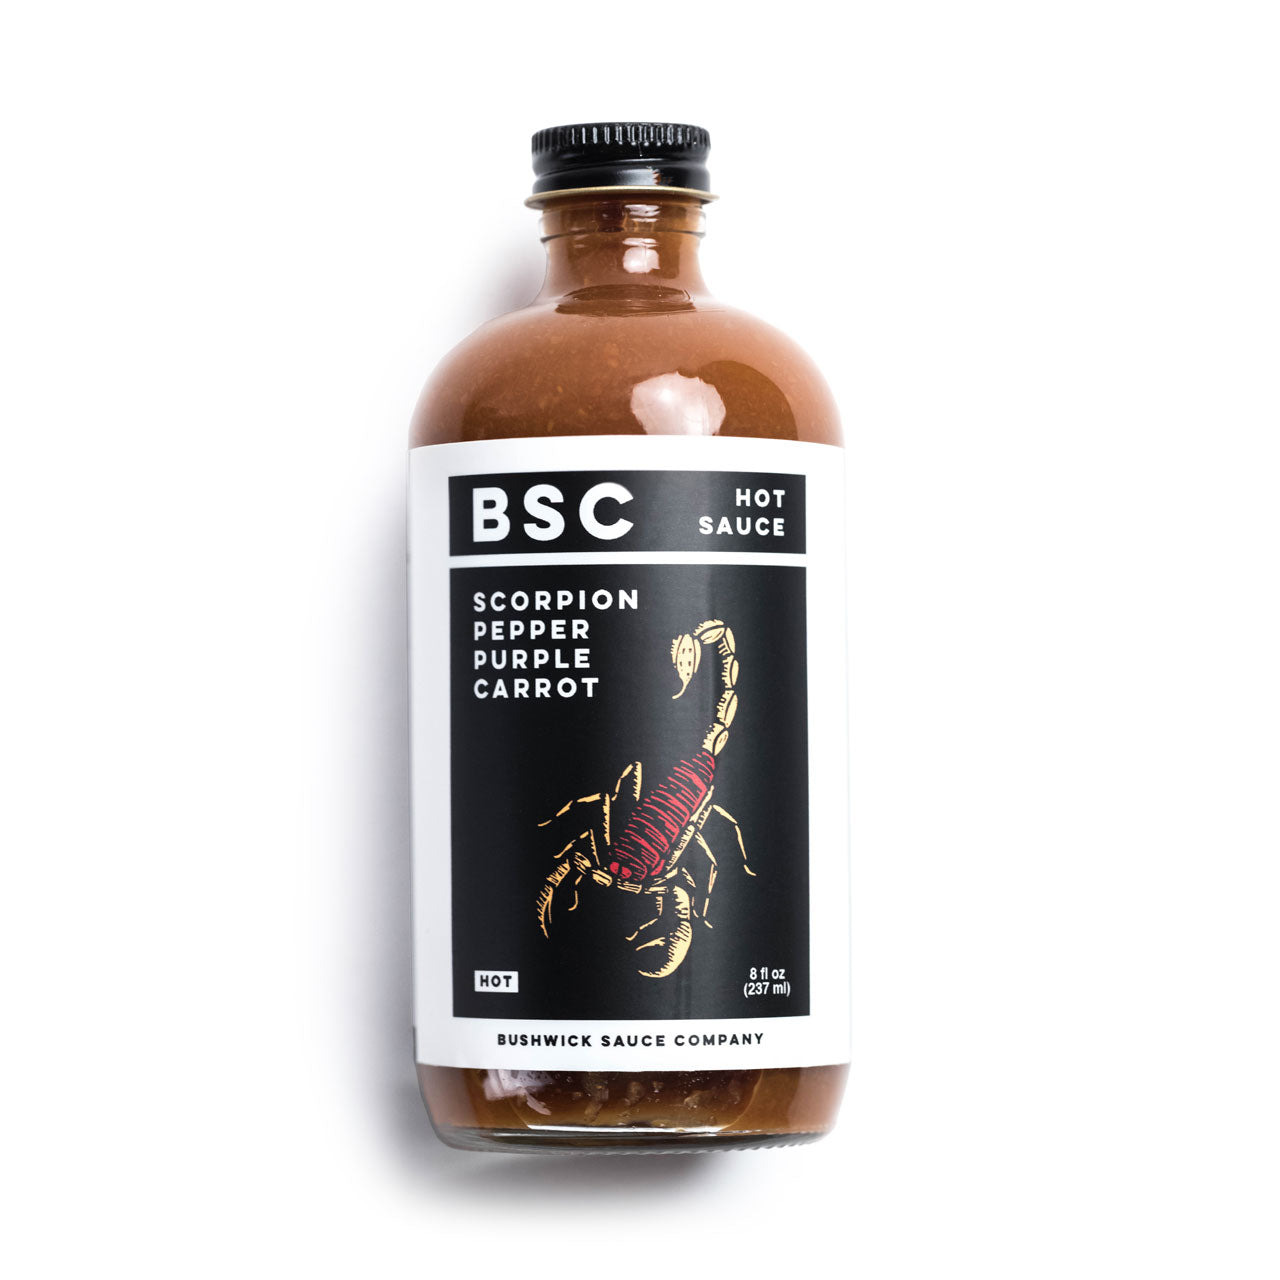 BSC Scorpion Pepper Hot Sauce